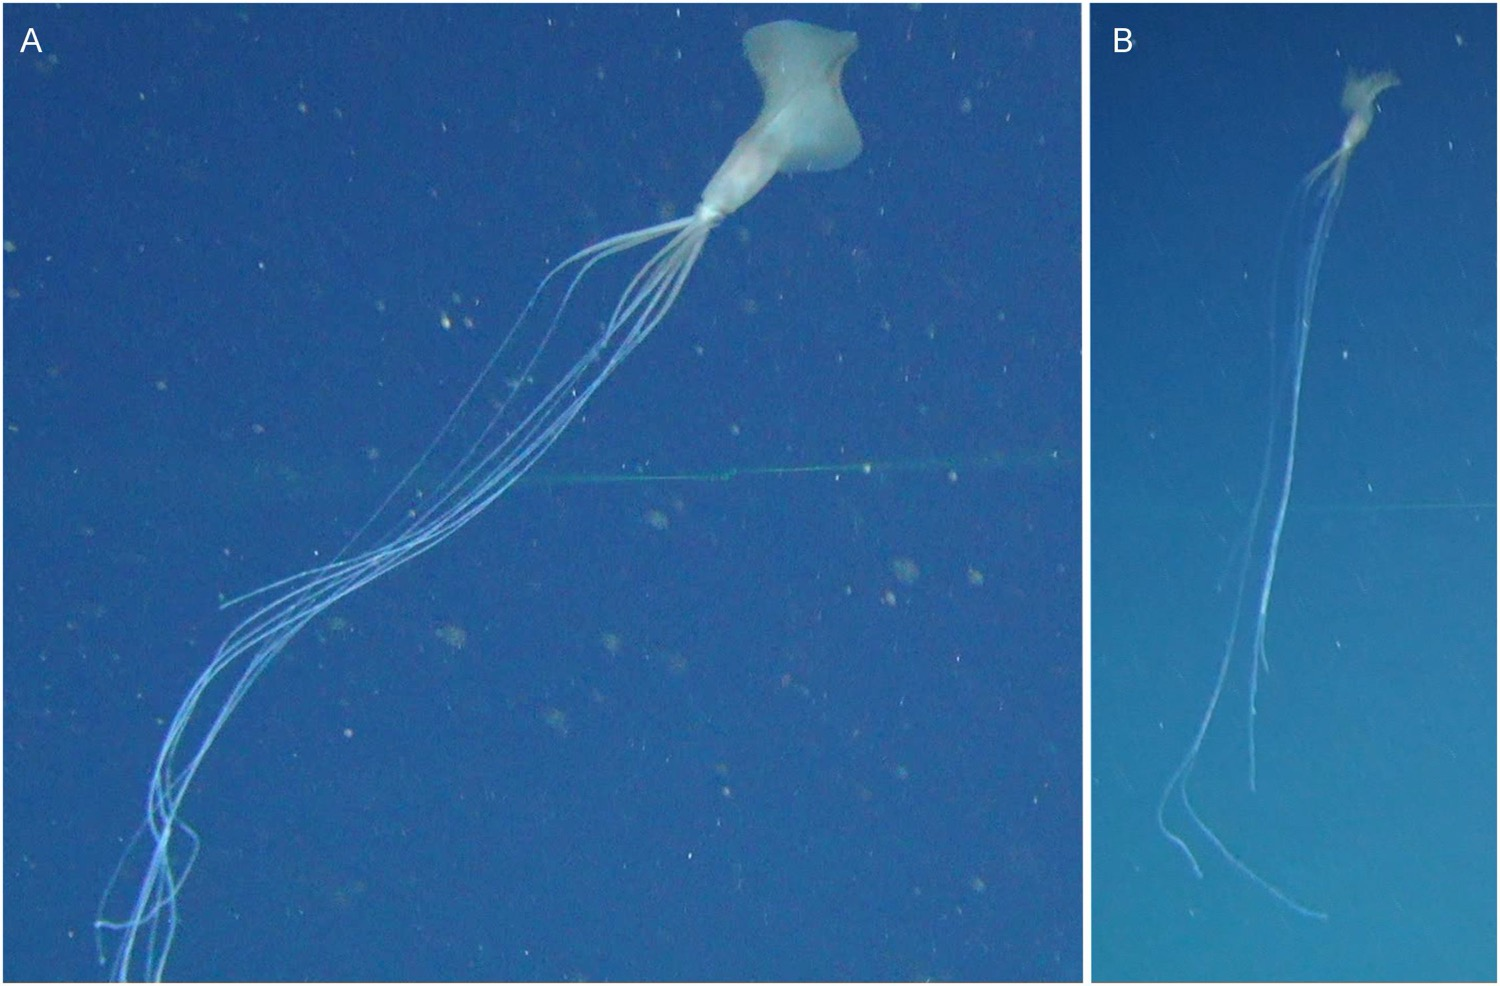 two photos side by side of squid showing extremely long thread like arms and tentacles